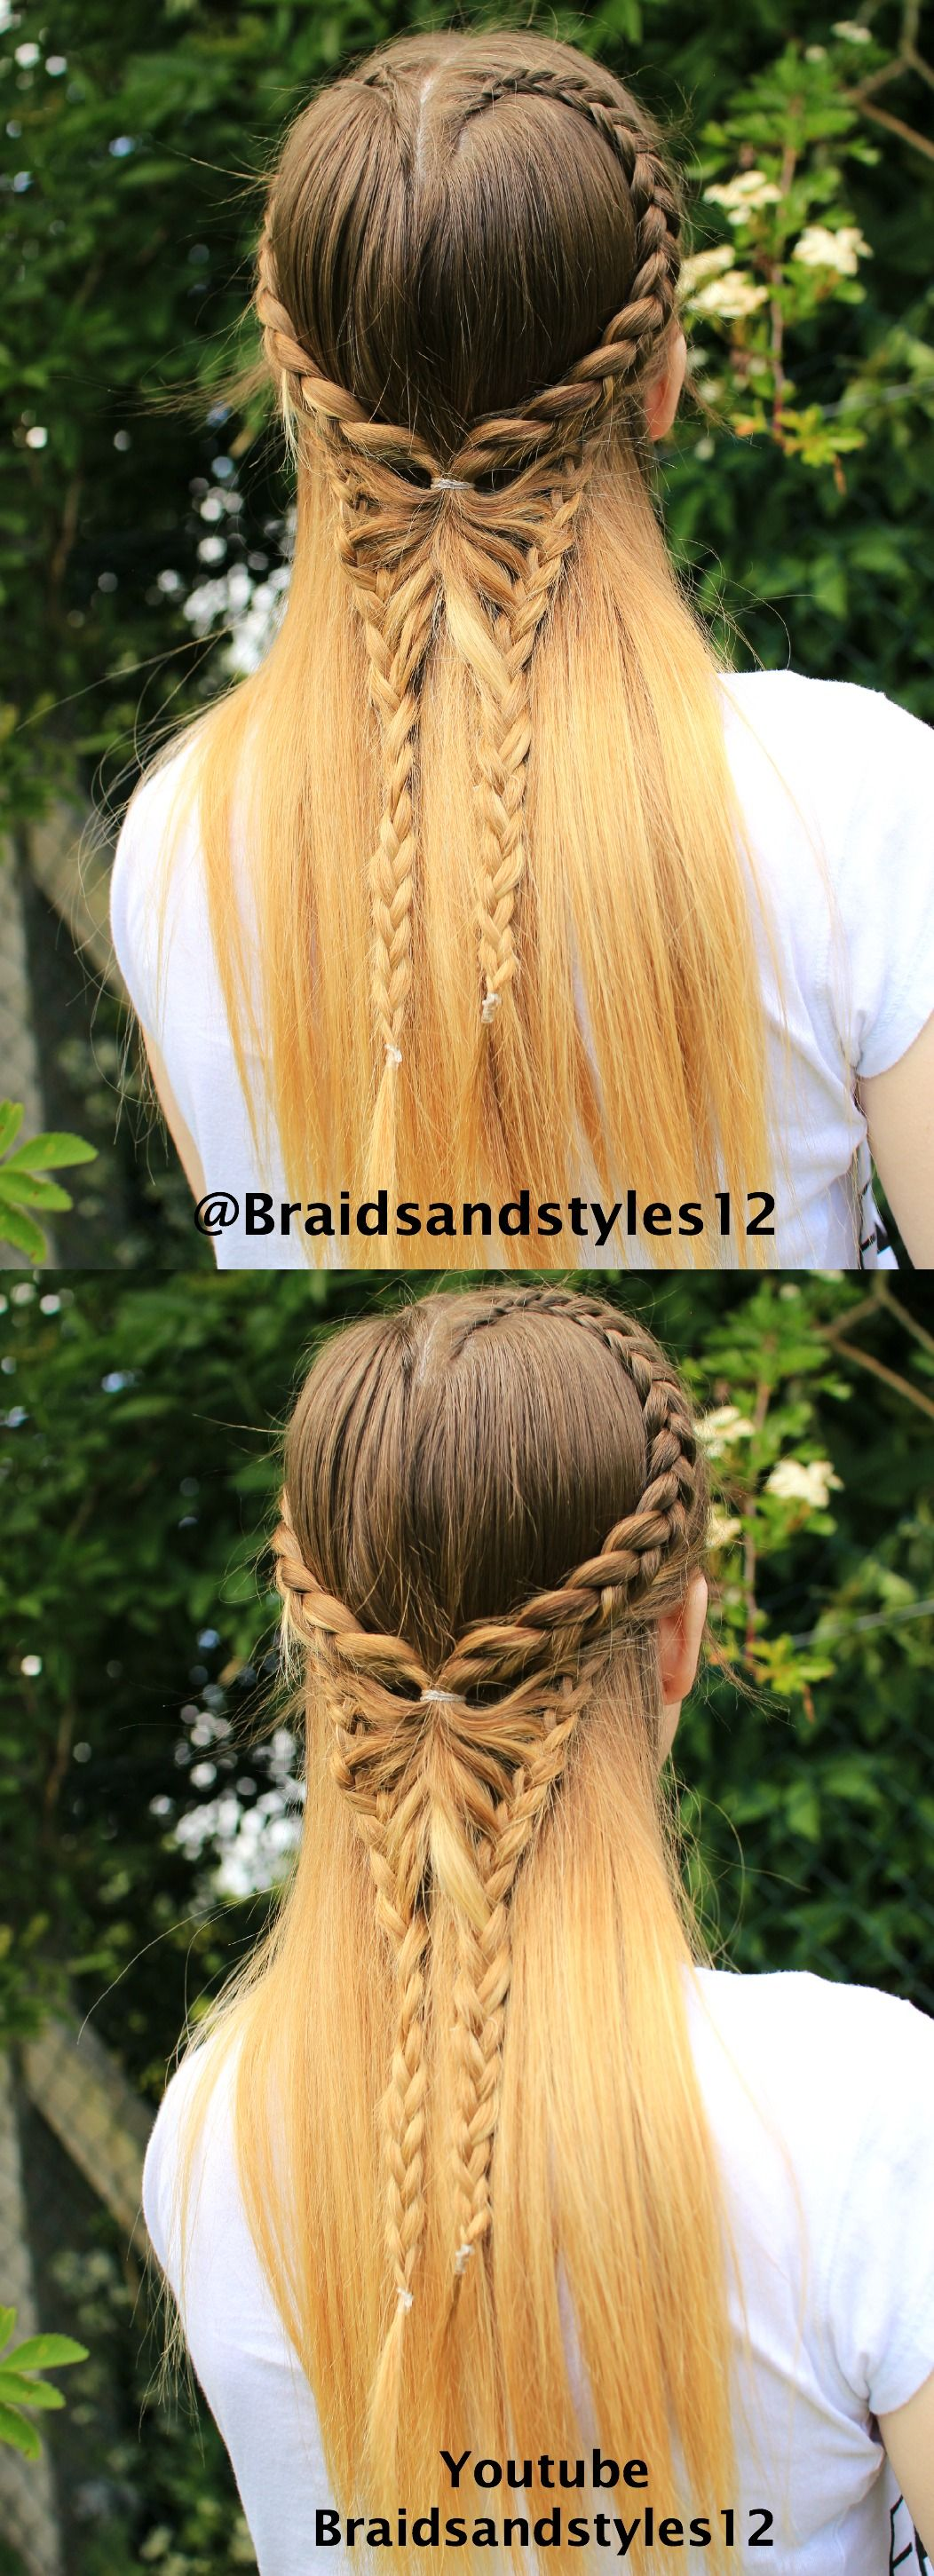 Pin by nicole white on hairstyles pinterest butterfly braid